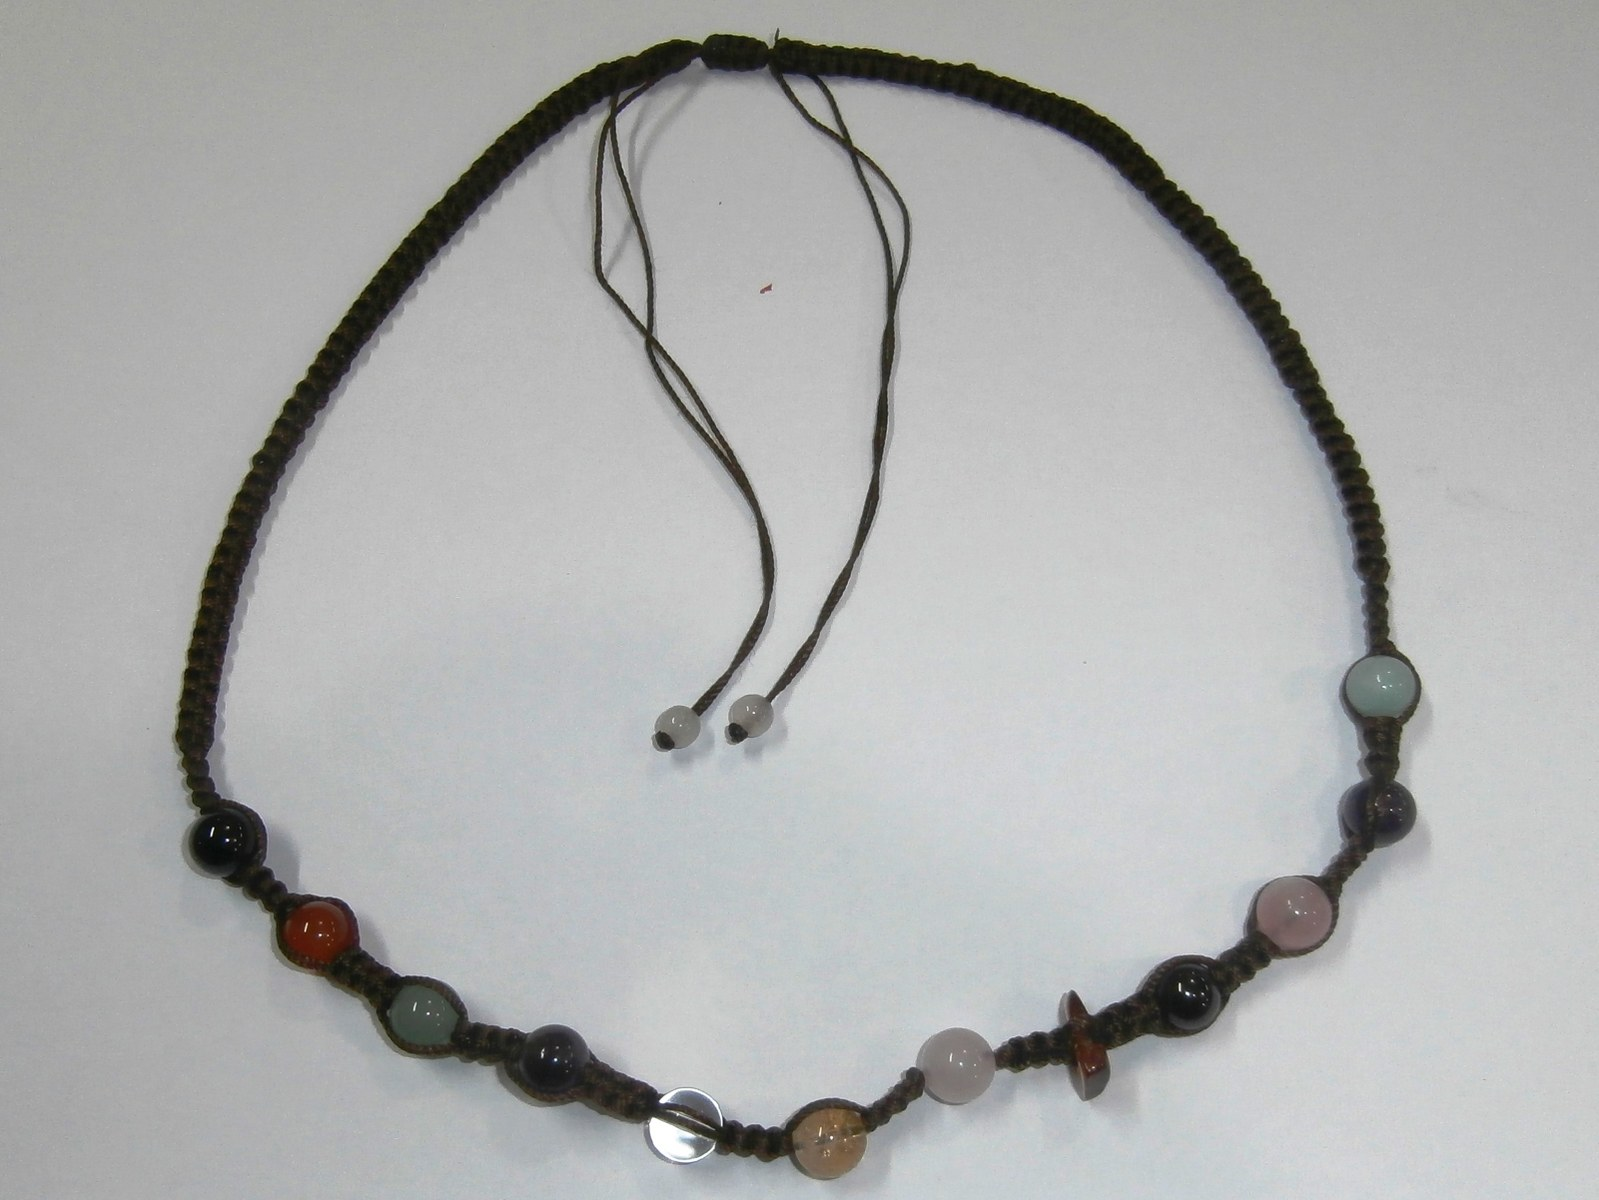 ALL IN ONE NECKLACE - MALE